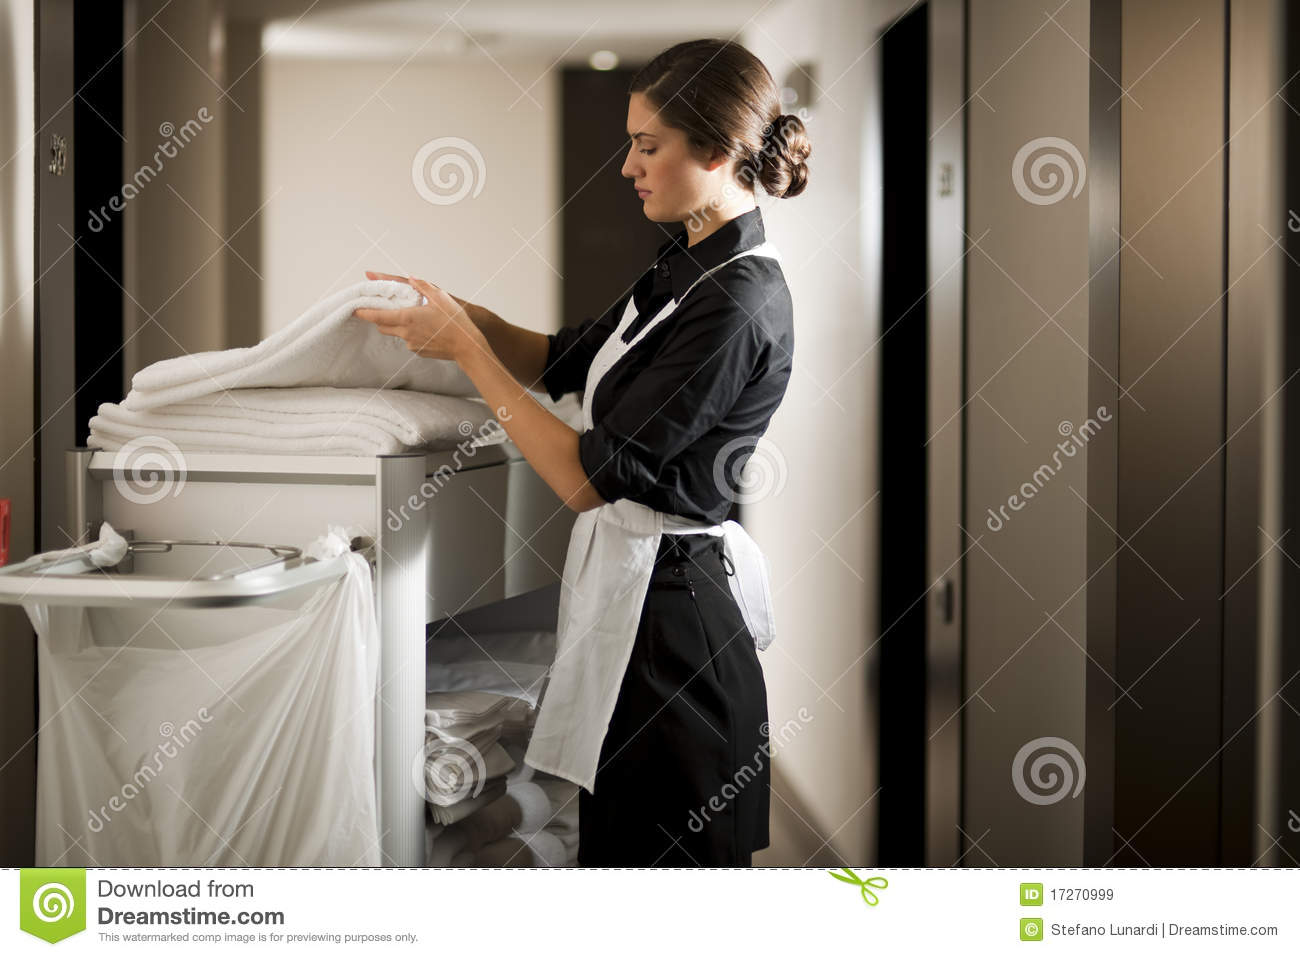 working as a housekeeper Working as a housekeeper is physically demanding you have to develop a routine and set your own pace so that you won't get overwhelmed.